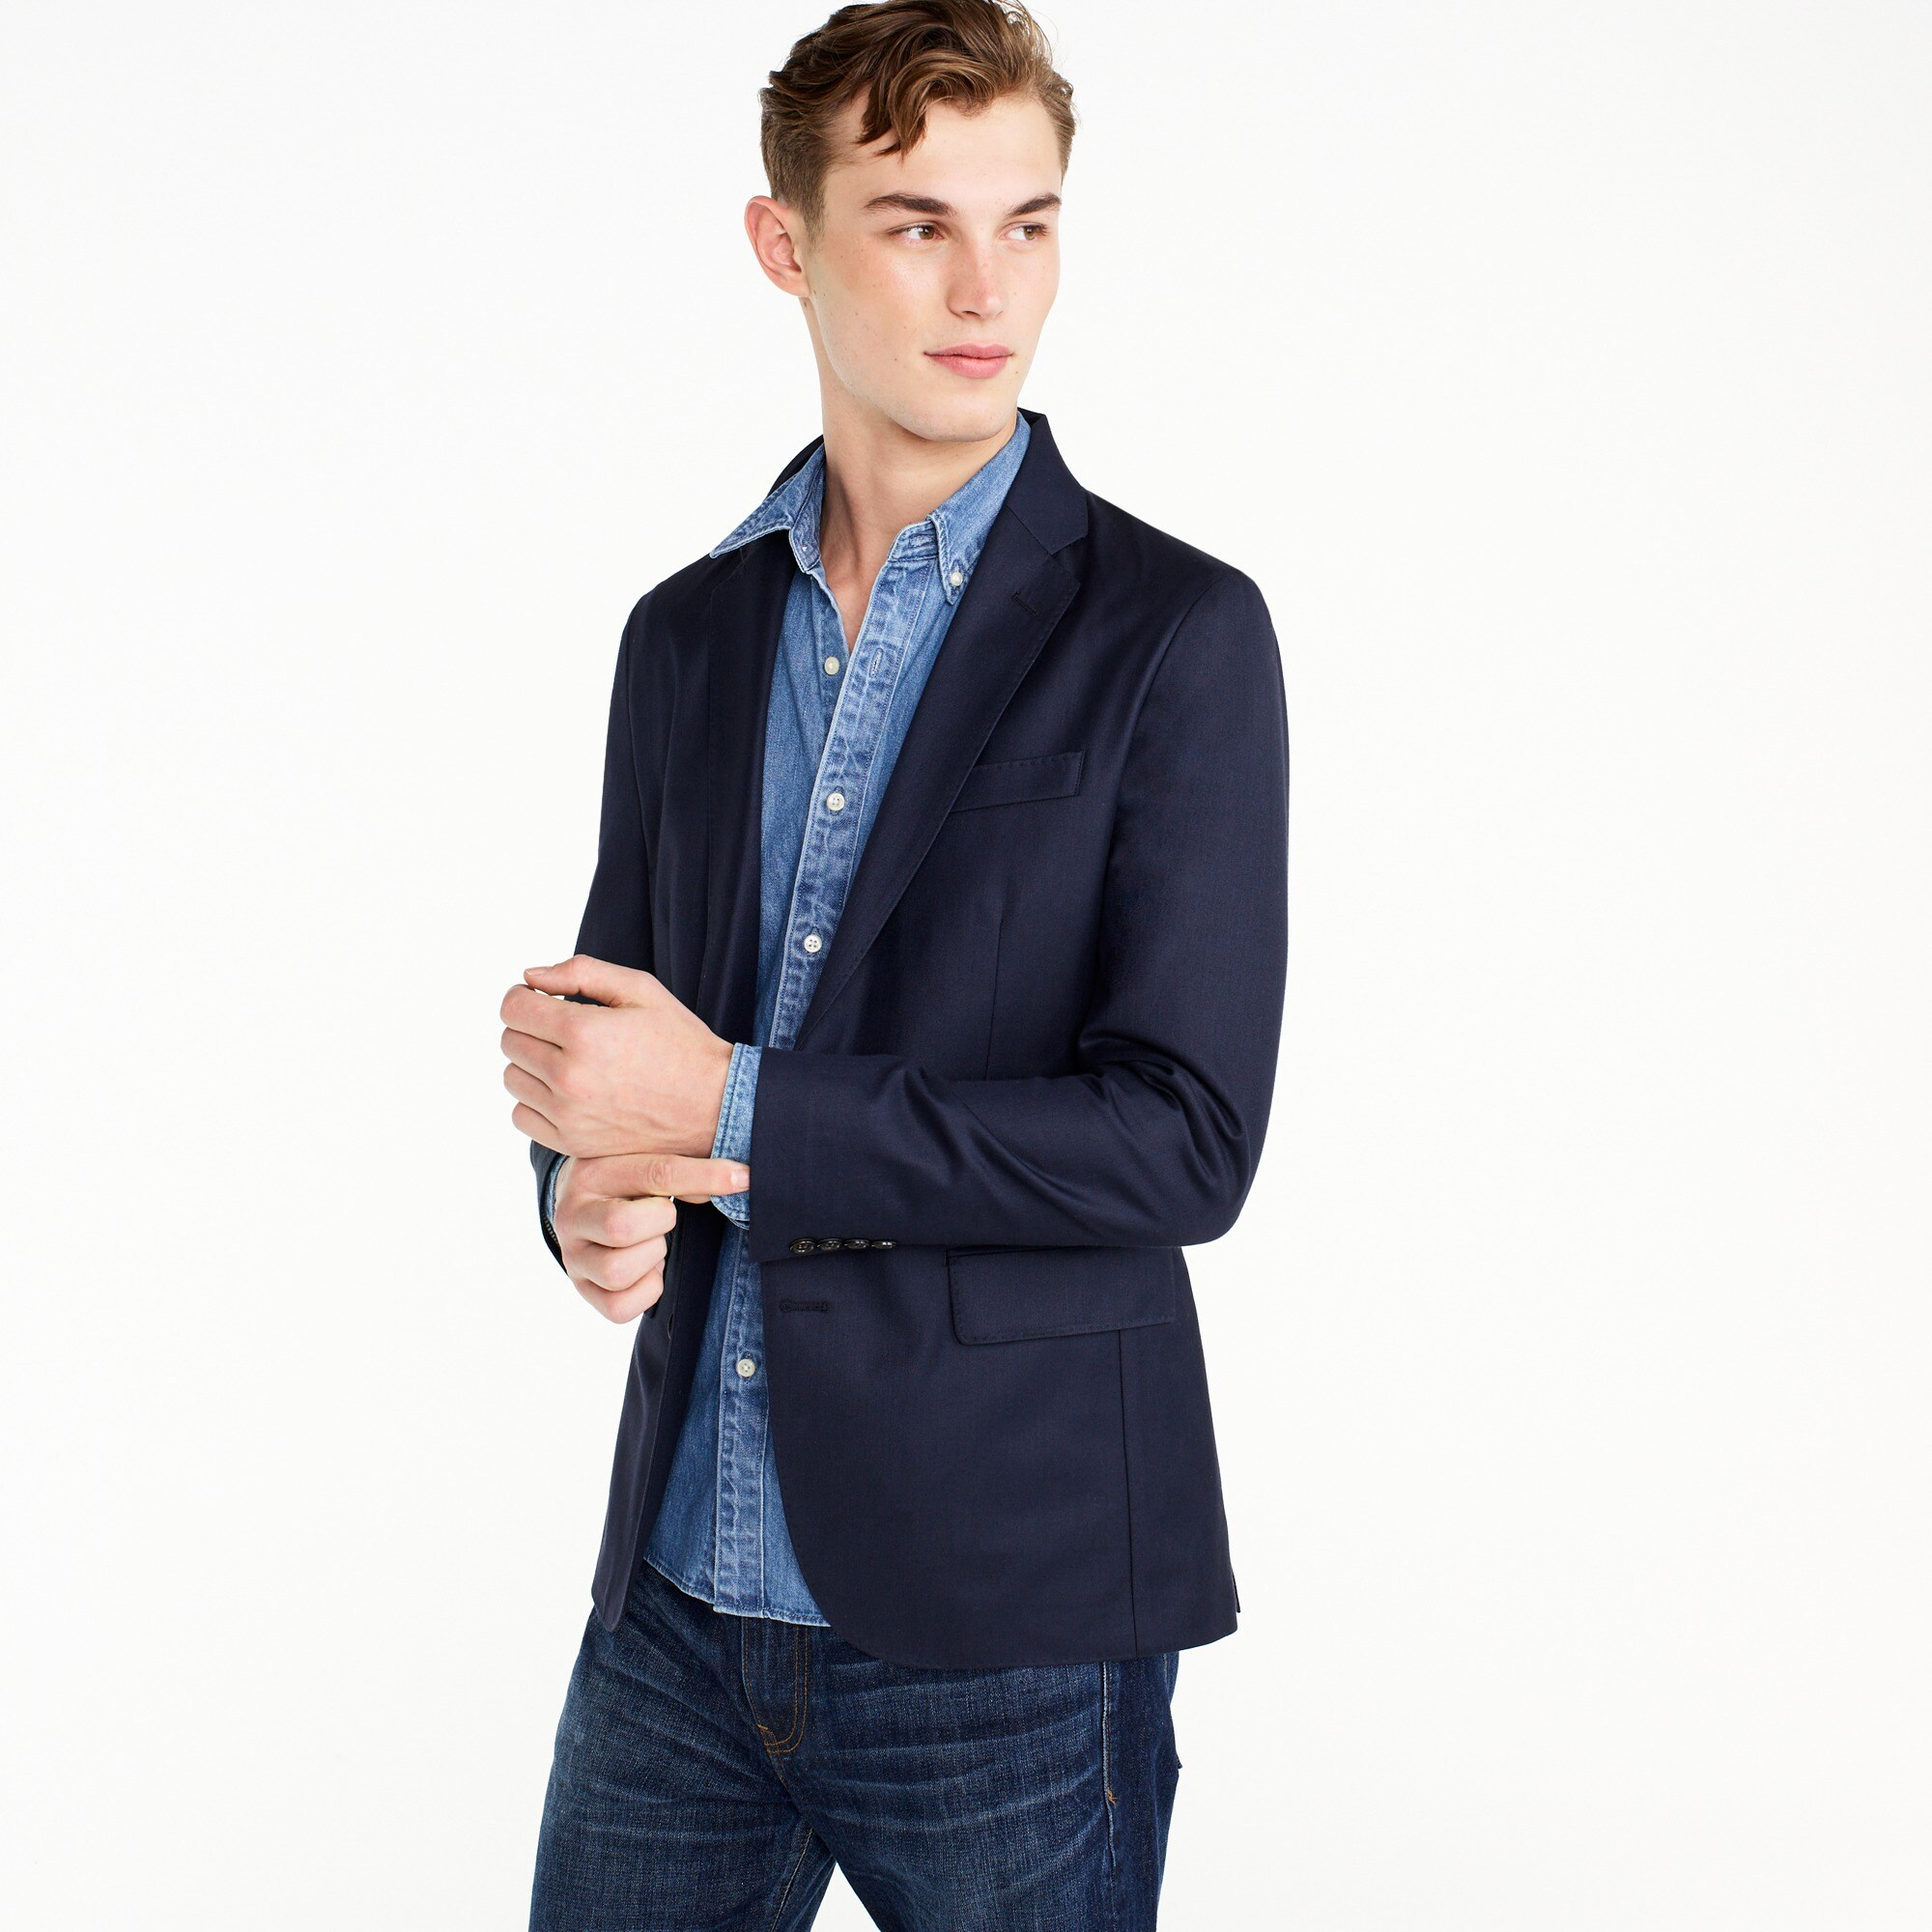 Image 1 for Ludlow Slim-fit unstructured blazer in American wool